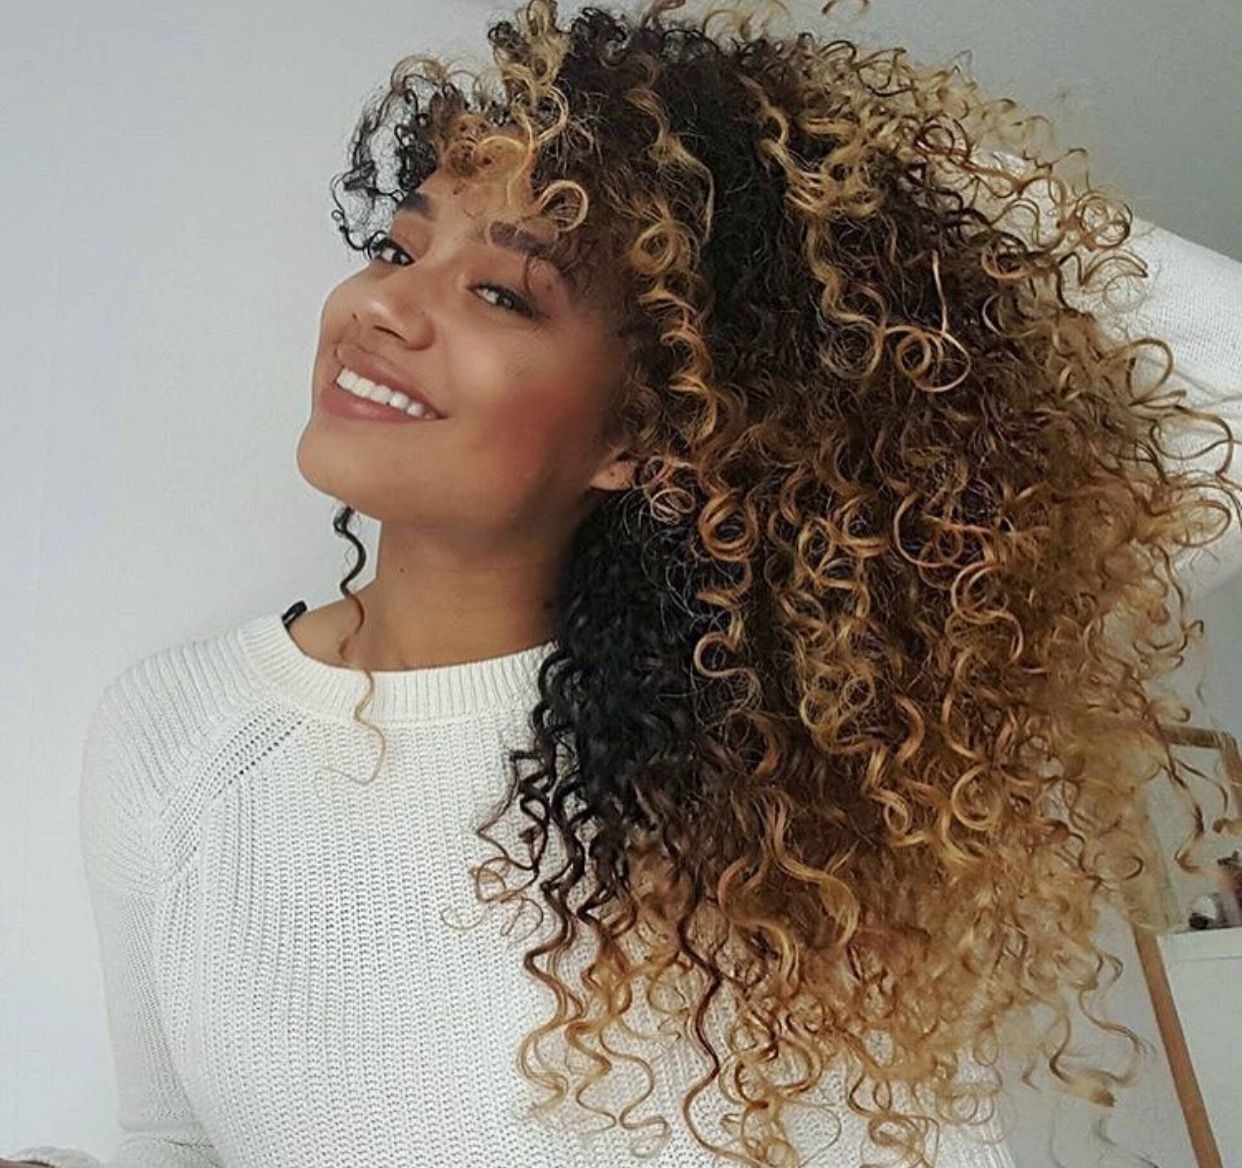 Curly Hair Goals Black Hairstyles Pinterest Hair Goals Curly